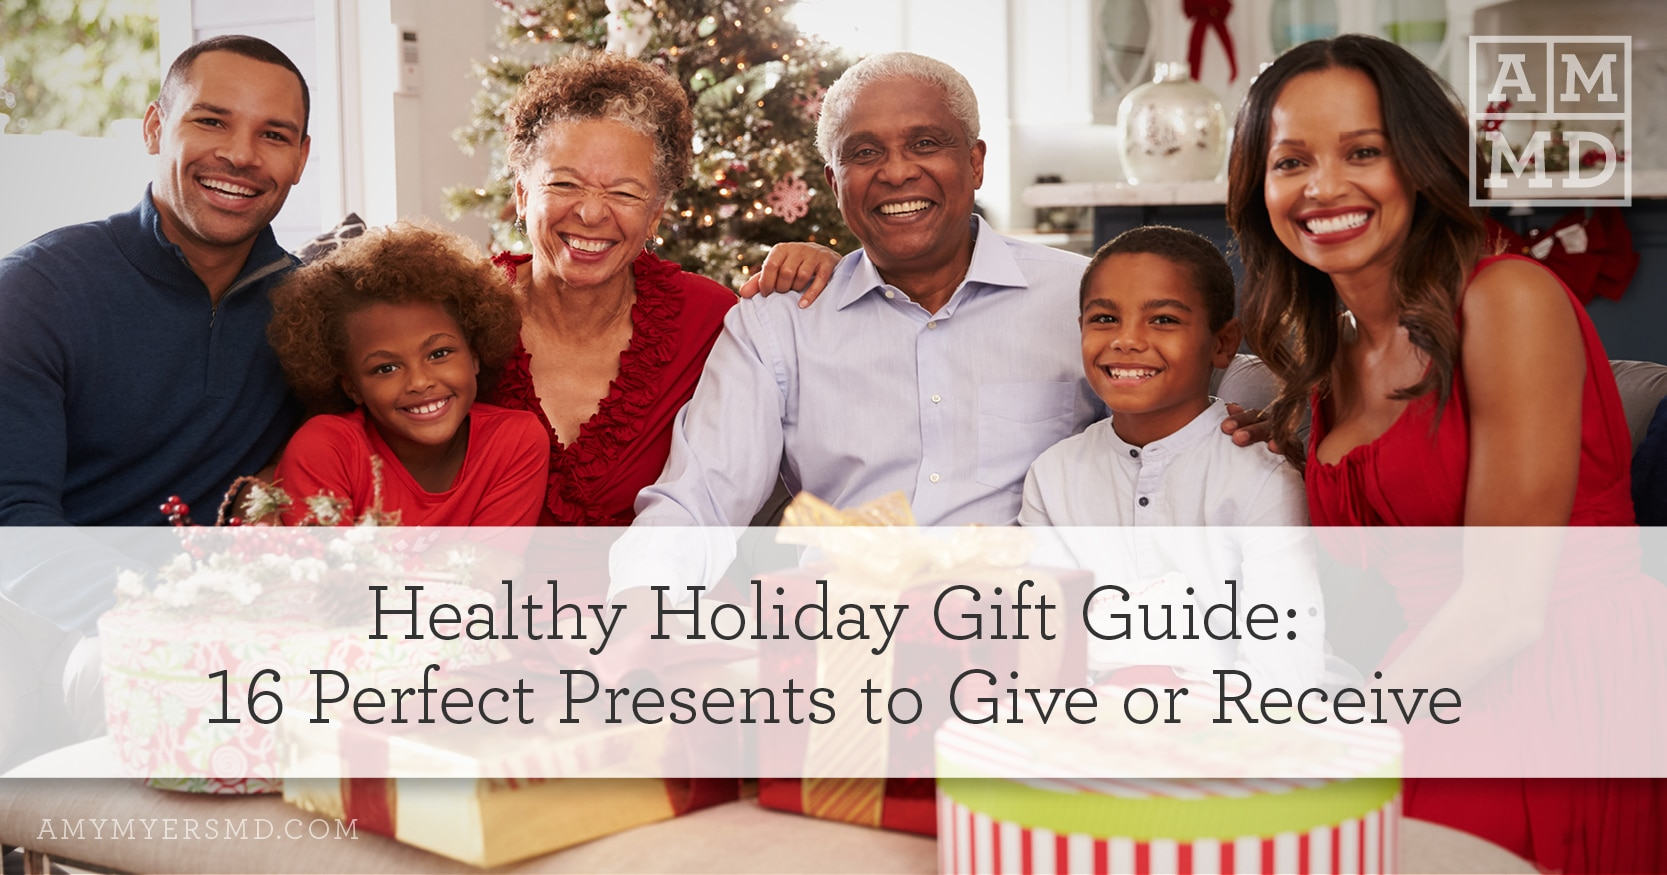 Healthy Holiday Gift Guide: 16 Perfect Presents to Give or Receive - A Family During the Holidays - Featured Image - Amy Myers MD®